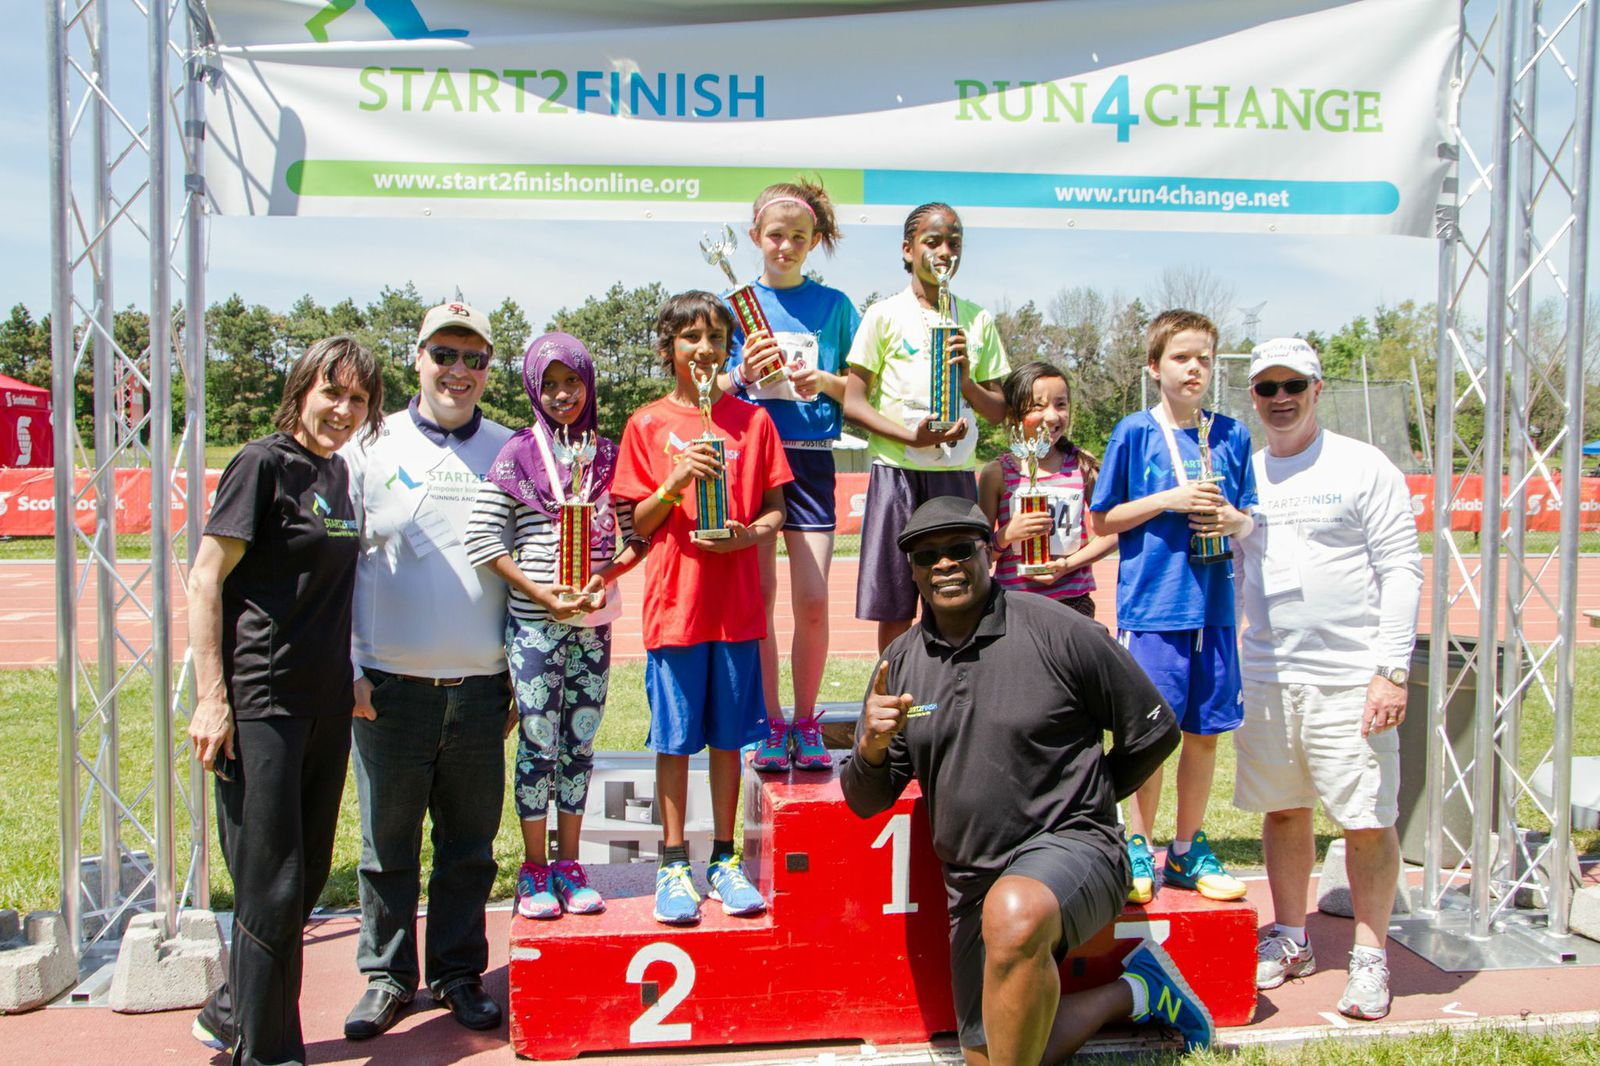 Coached by a children's author Fati (on the 1st place podium) wrote a book and won the 5k race